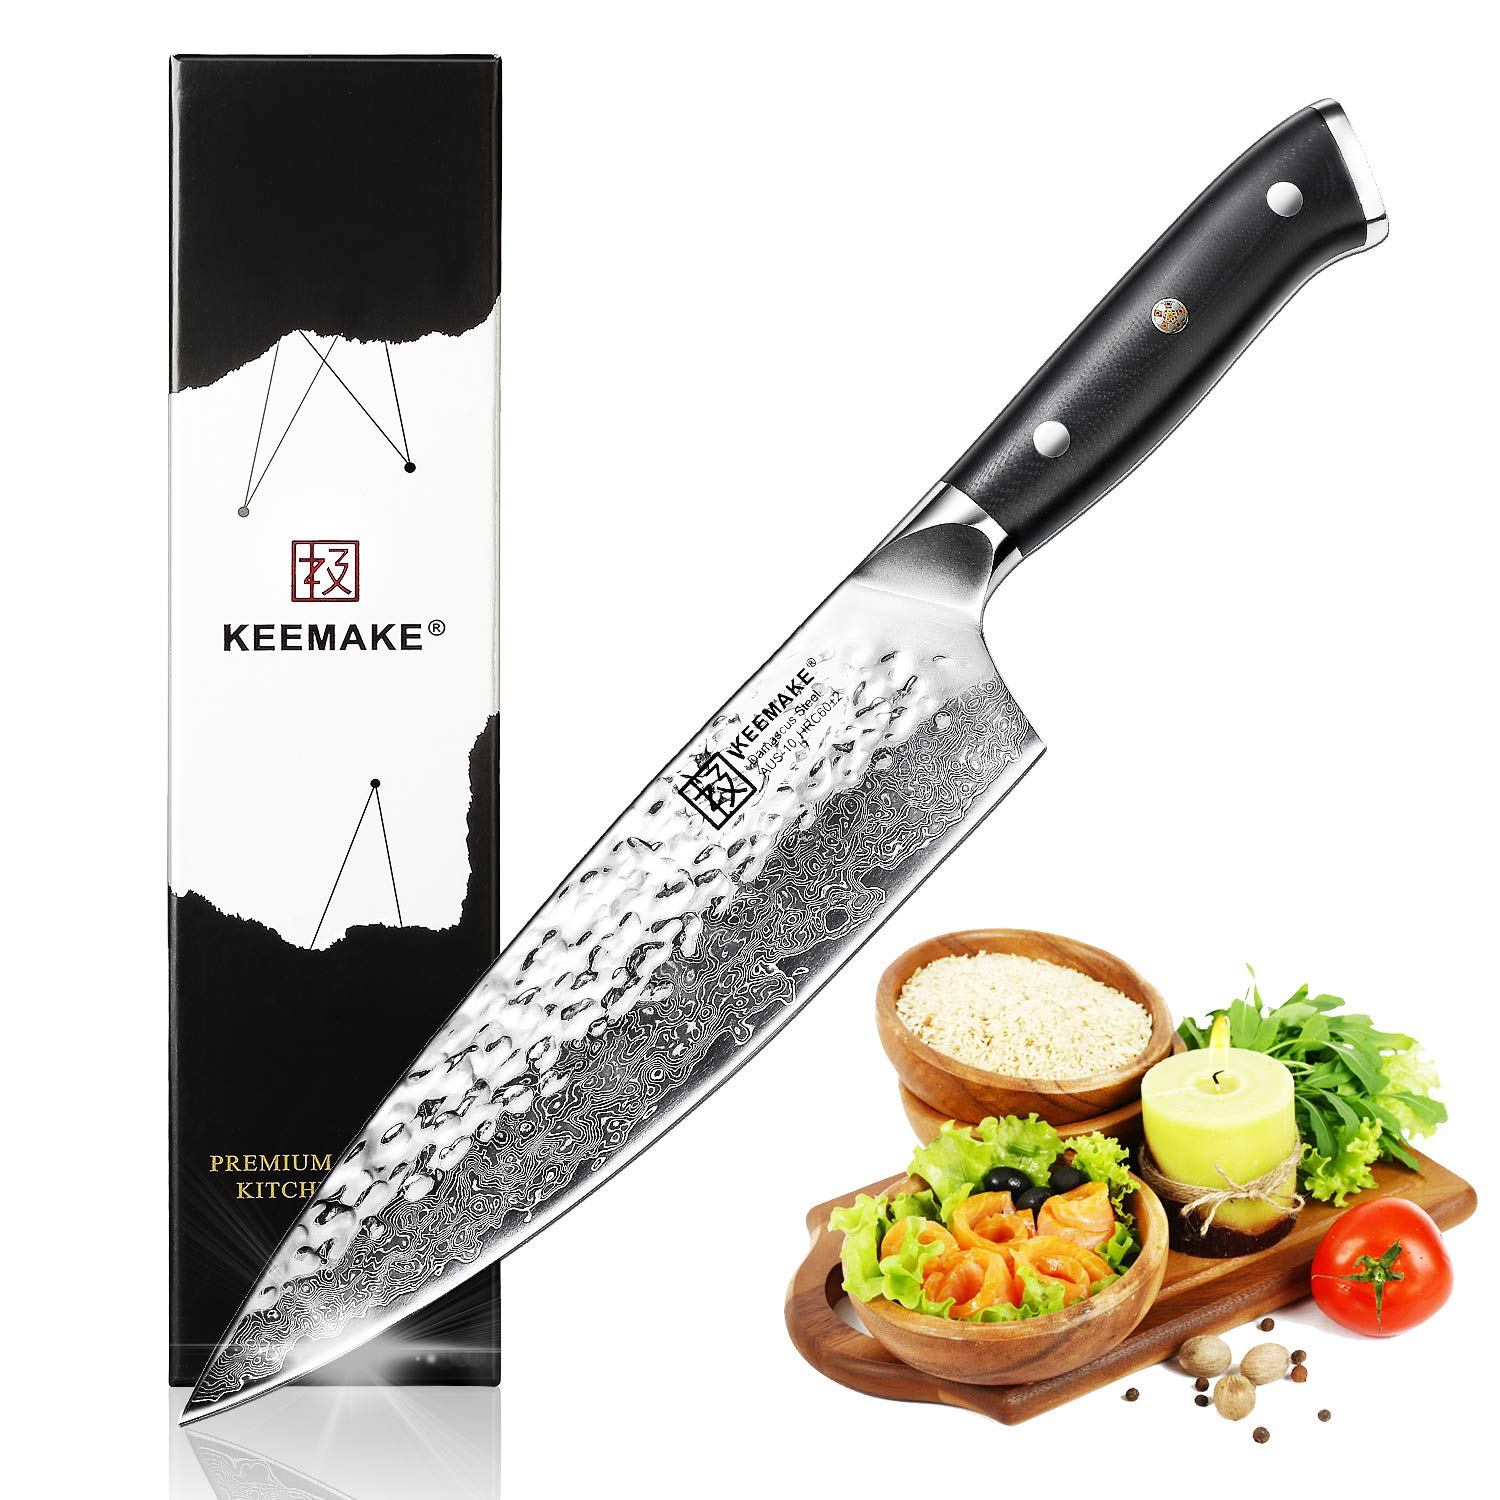 Damascus Chef Knife - KEEMAKE Pro Kitchen Knives8 Inch Japanese AUS-10 High Carbon Stainless Steel 67 Layer Damascus Deba Chefs Knife with G10 Ergonomic Handle - Razor Sharp -Hammered Finish